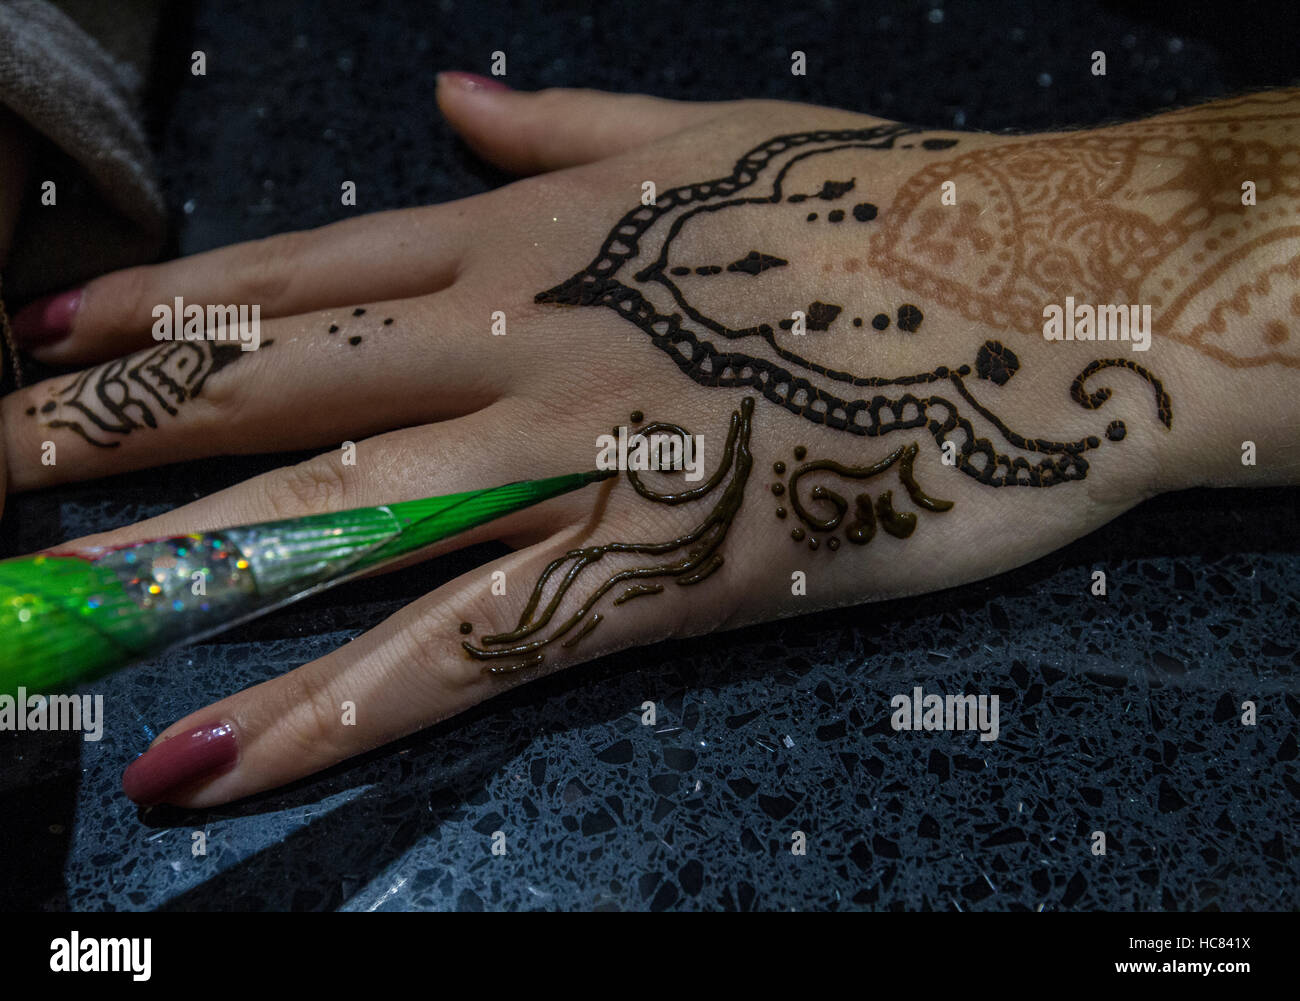 delicte drawing of henna on teens hand - Stock Image